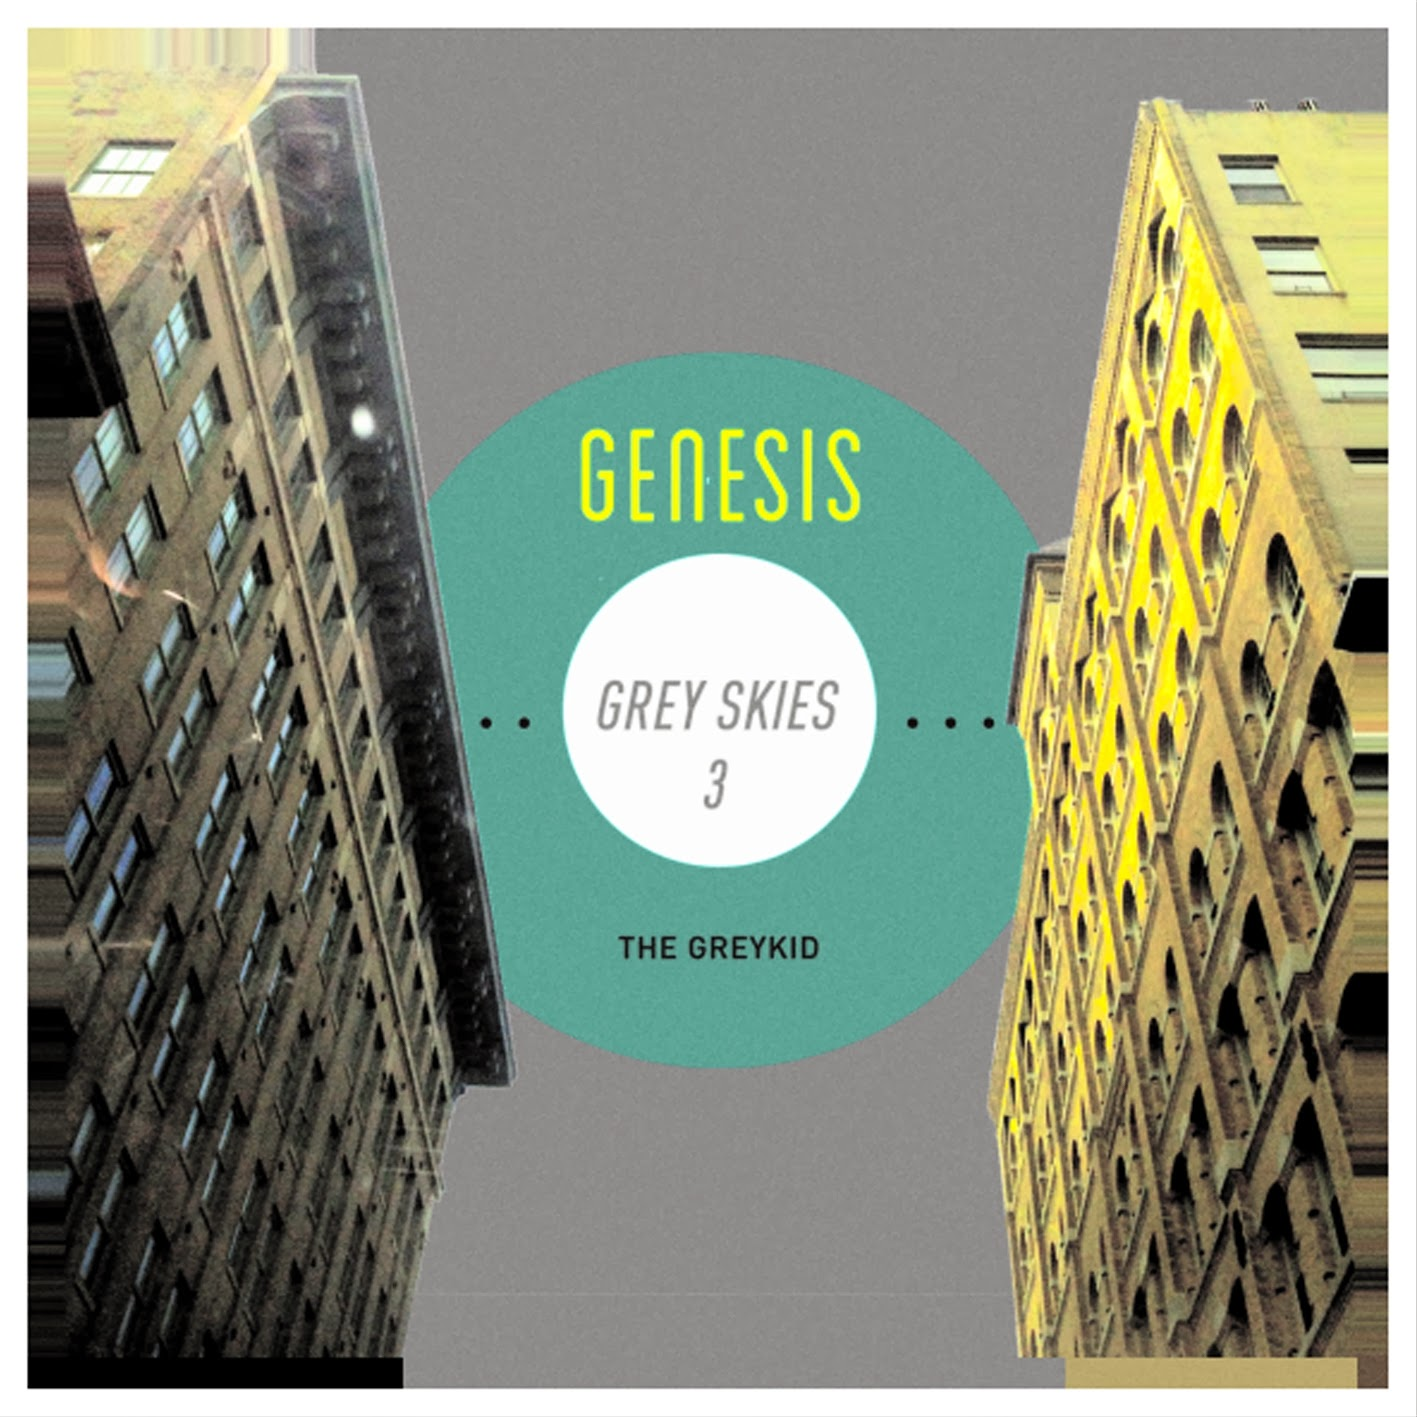 GENESIS THE GREY KID